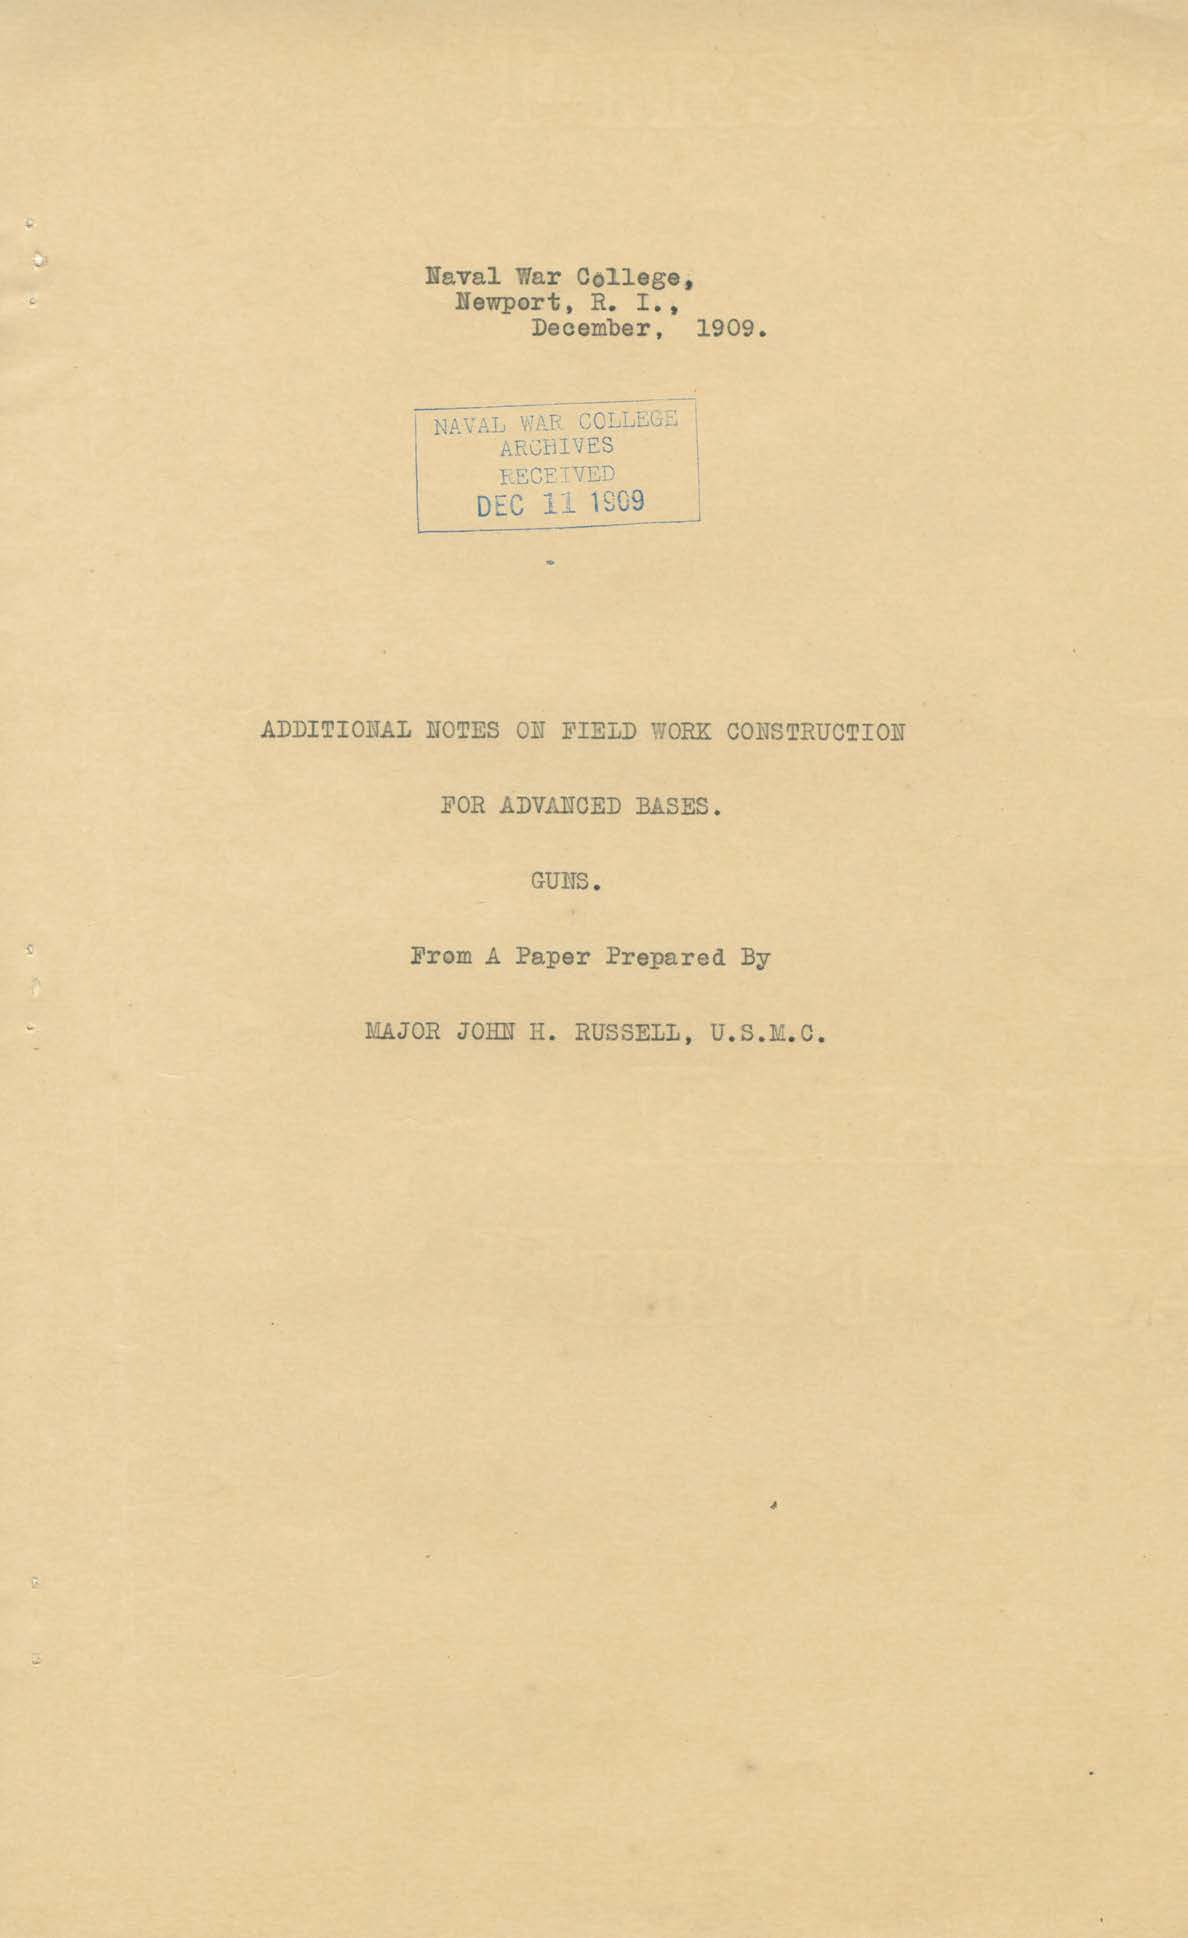 Additional Notes on Field Work Construction for Advanced Bases, Guns, John H. Russell